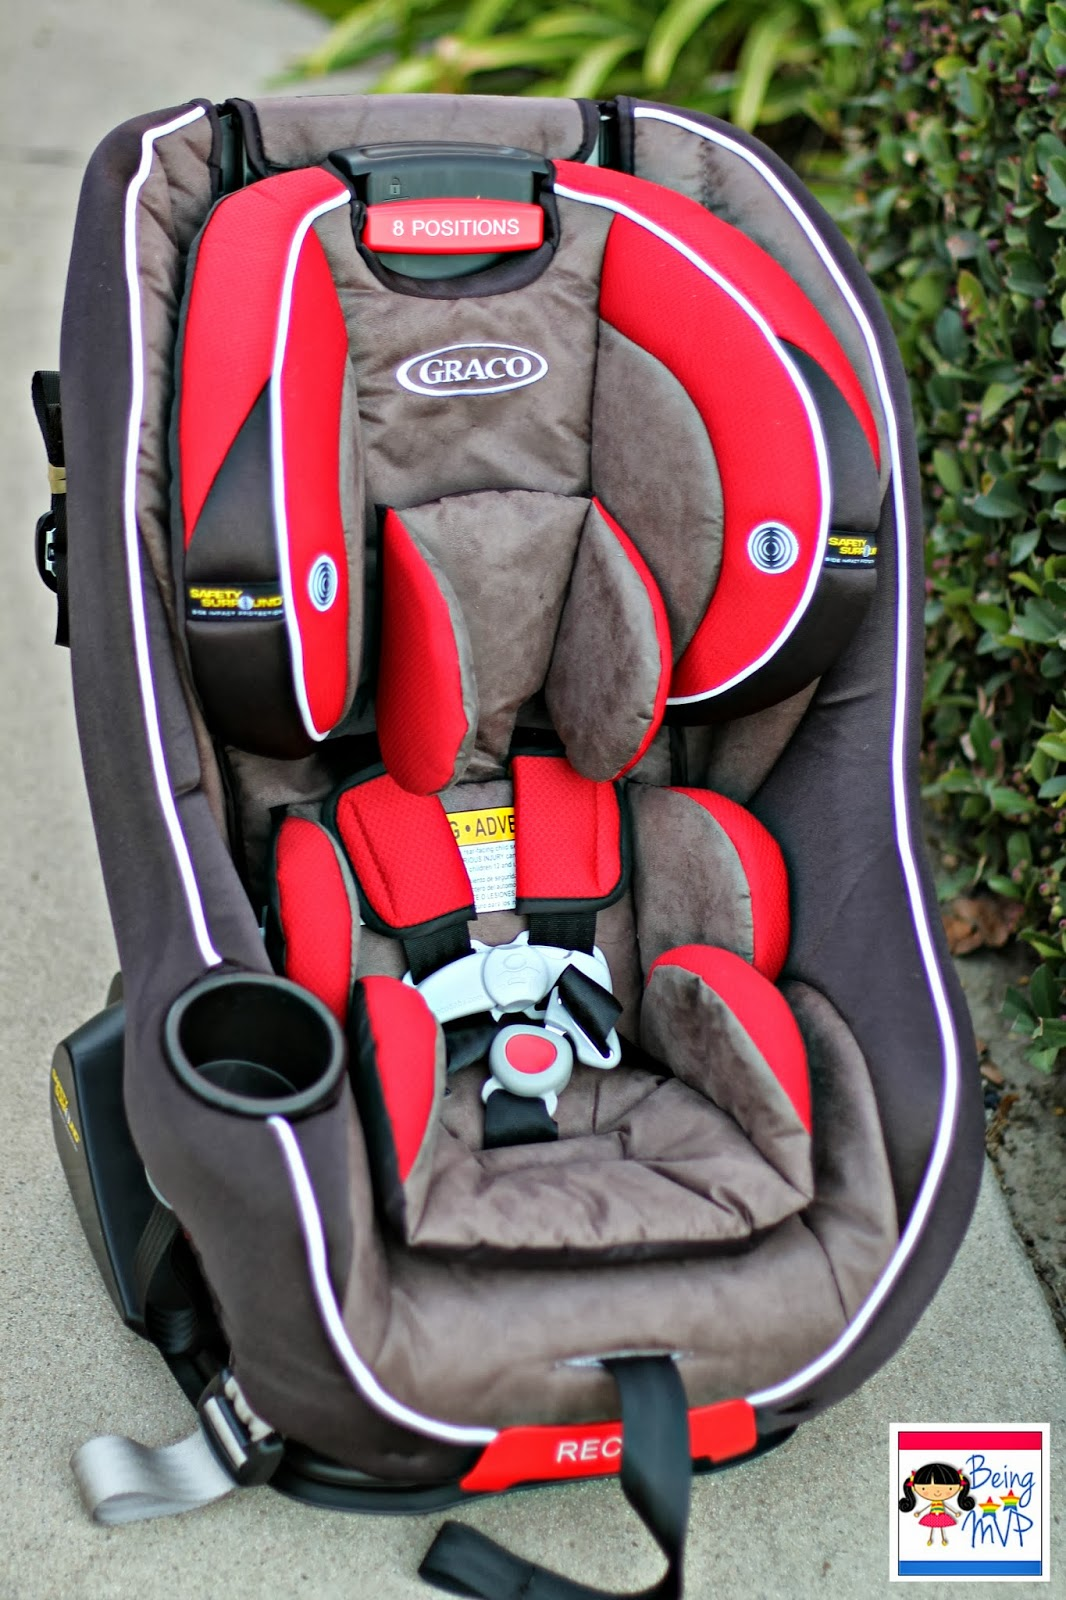 Buckle Up For Safety With Graco Head Wise 70 Car Seat Surround Protection